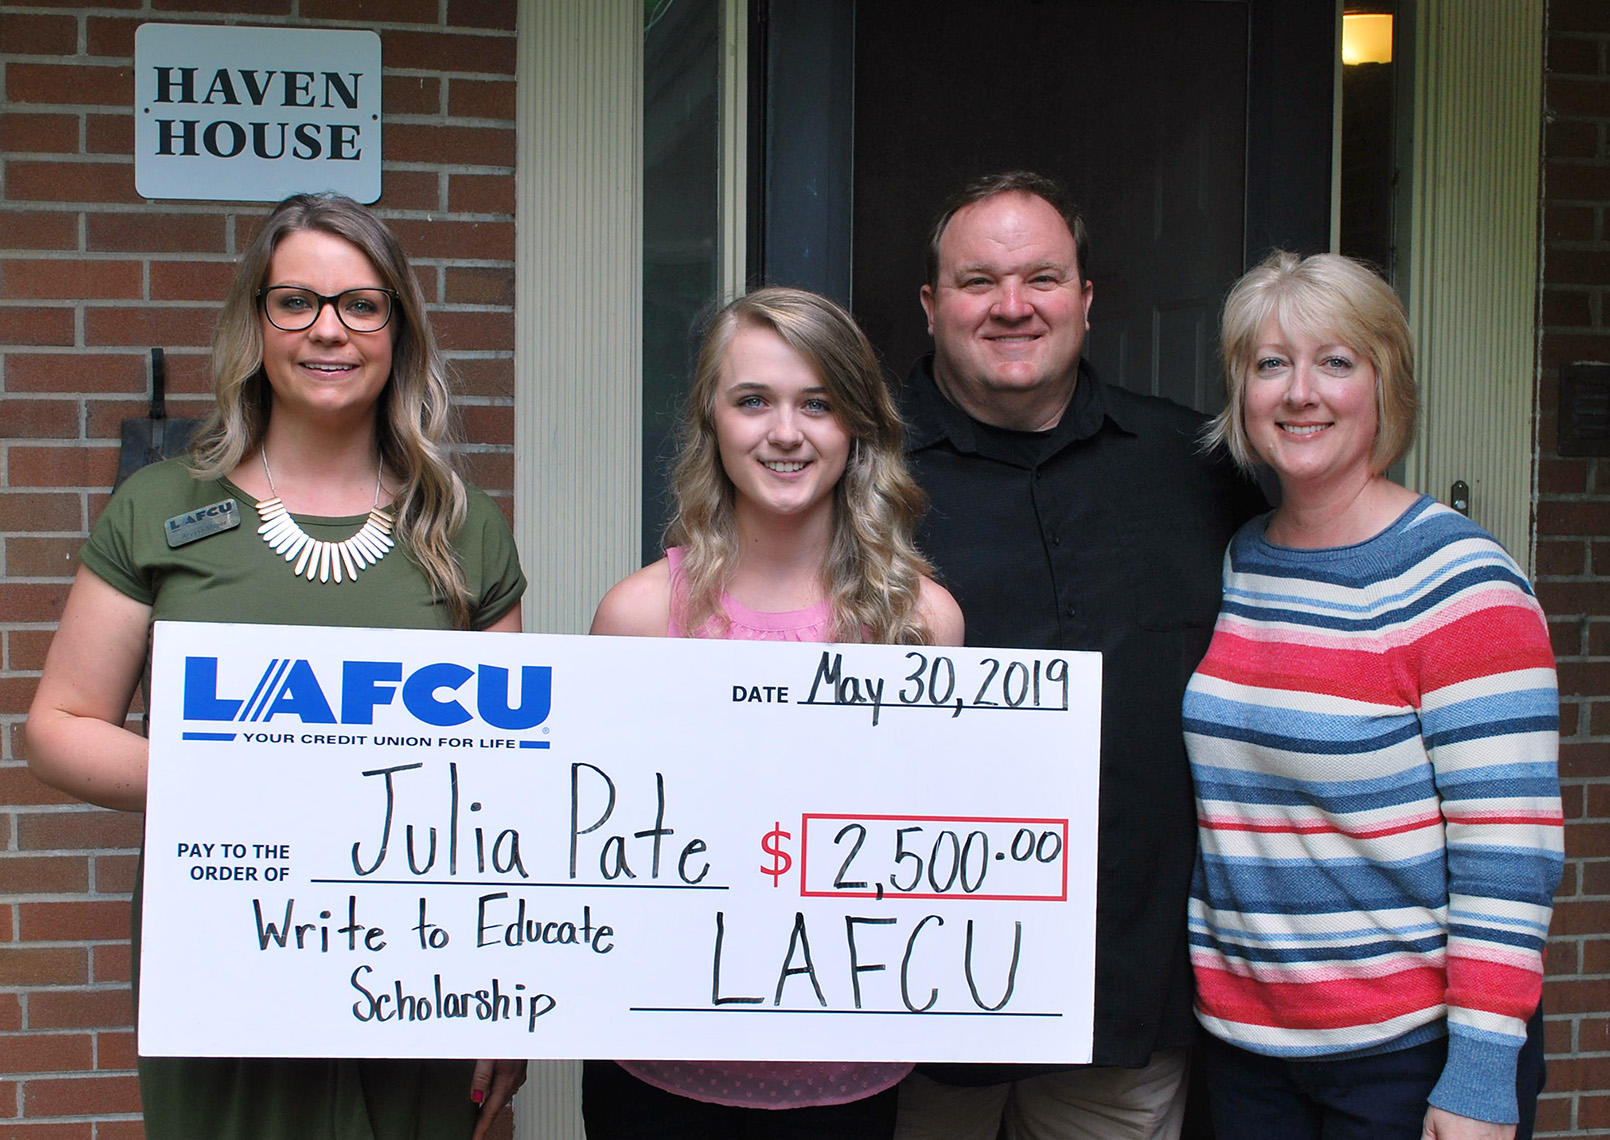 LAFCU's Alyssa Sliger presents a $2,500 scholarship to Baker College-bound Julia Pate. Also pictured are Pate's parents, Patrick and Kathy Pate of Lapeer.